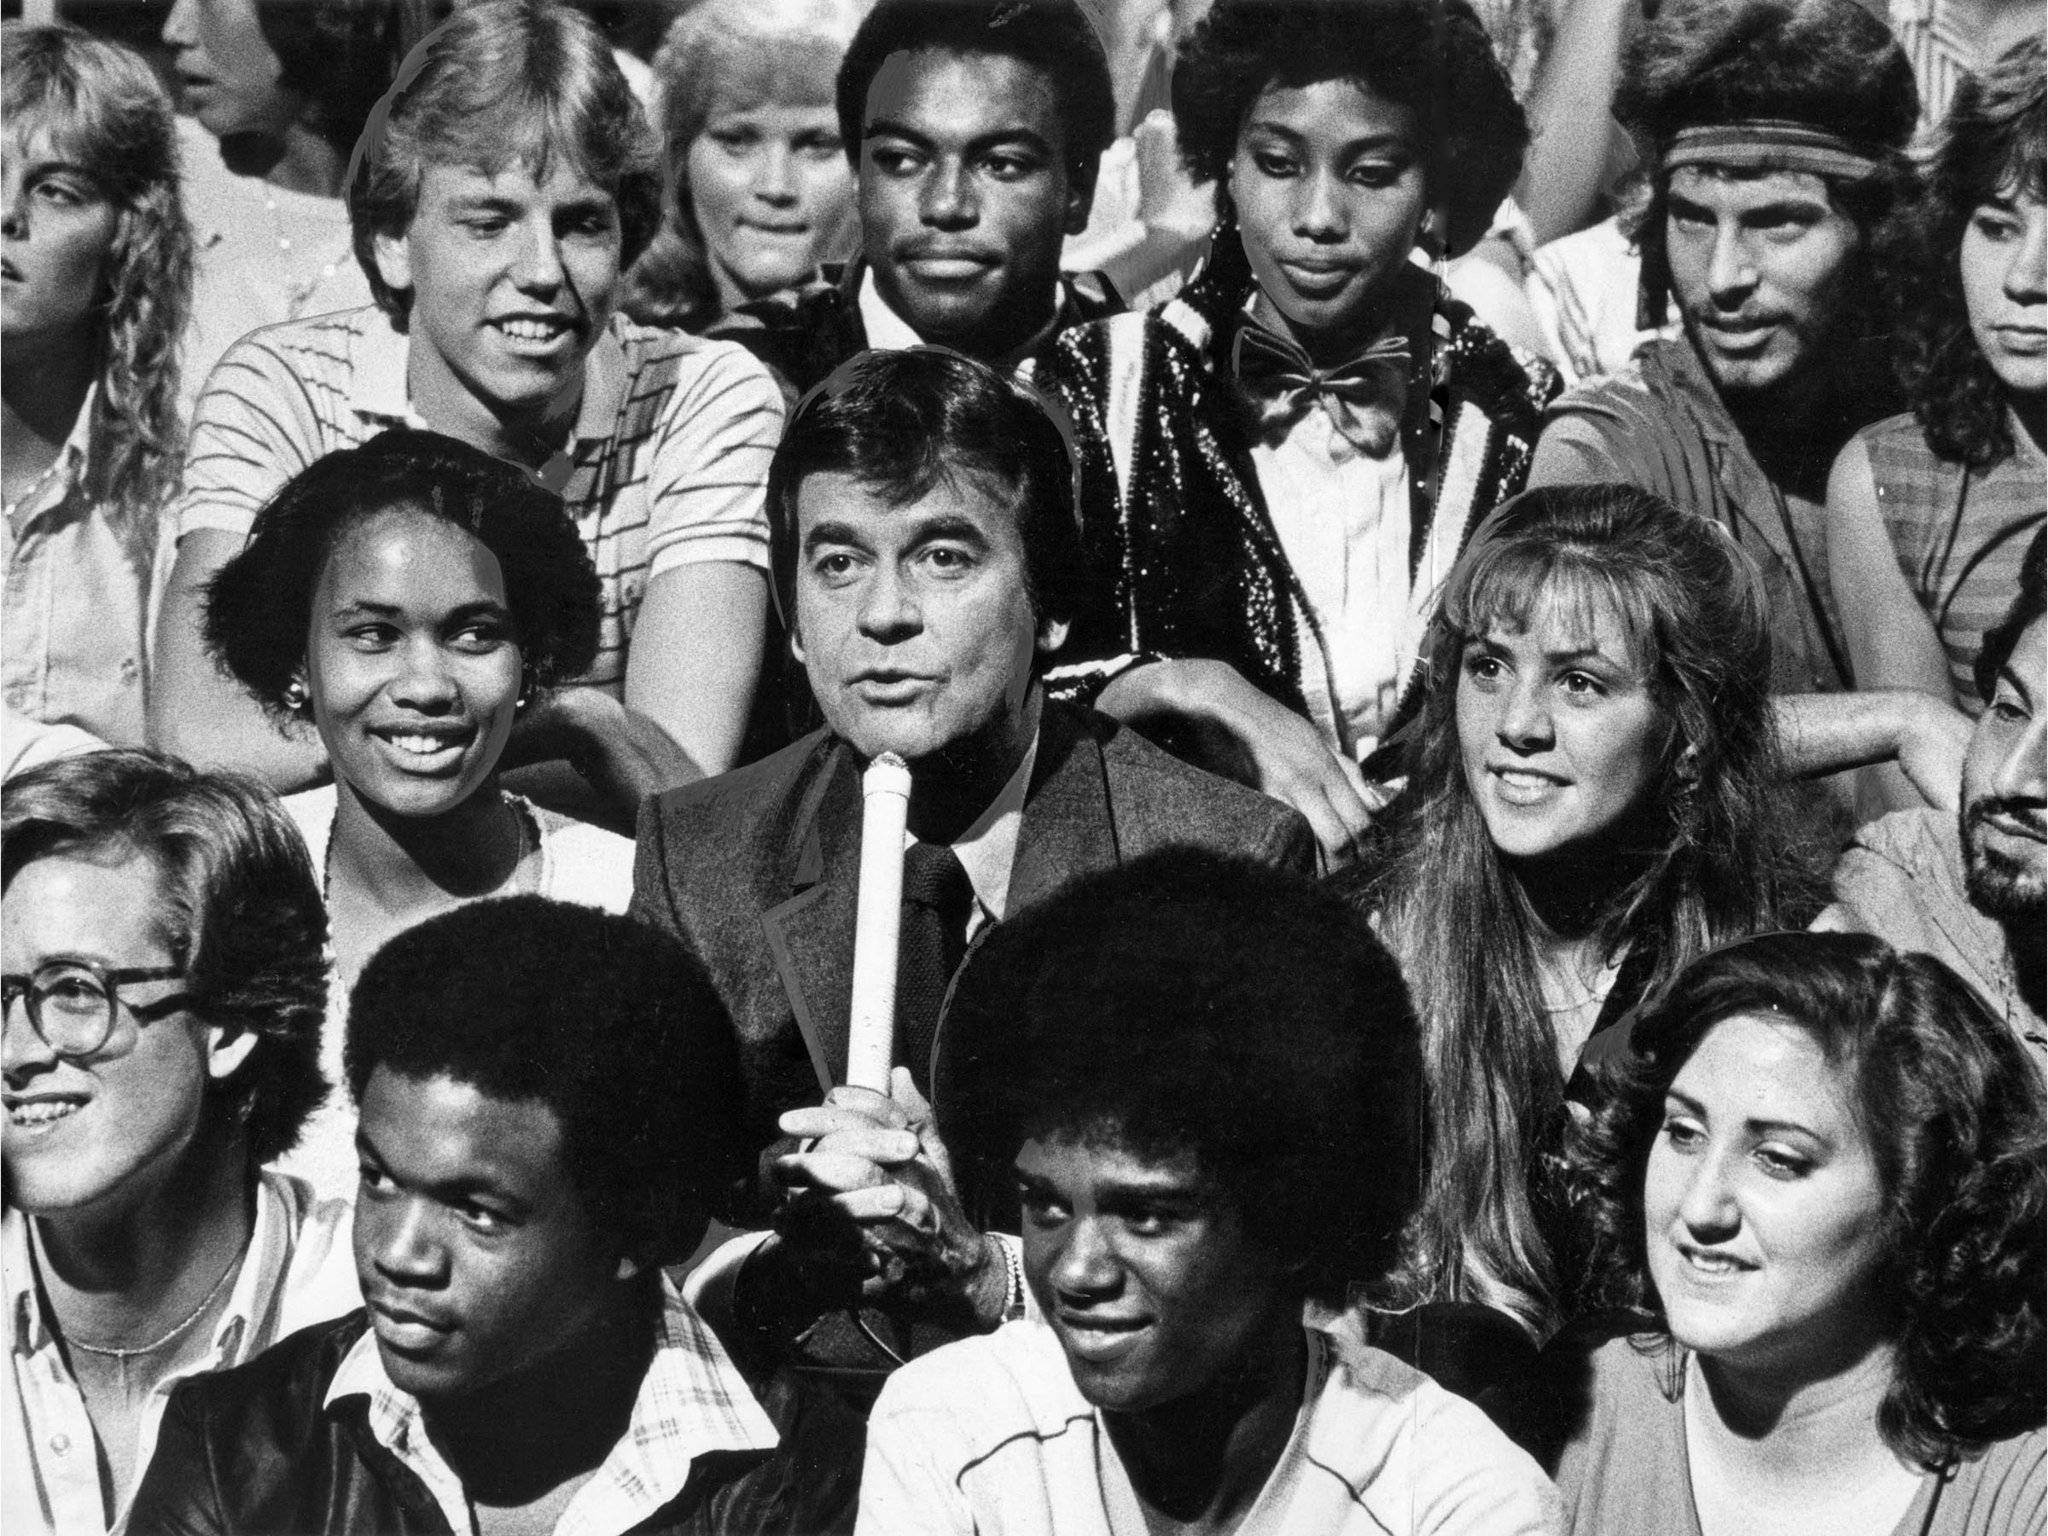 May 16, 1981: Dick Clark sits with the audience while introducing acts on